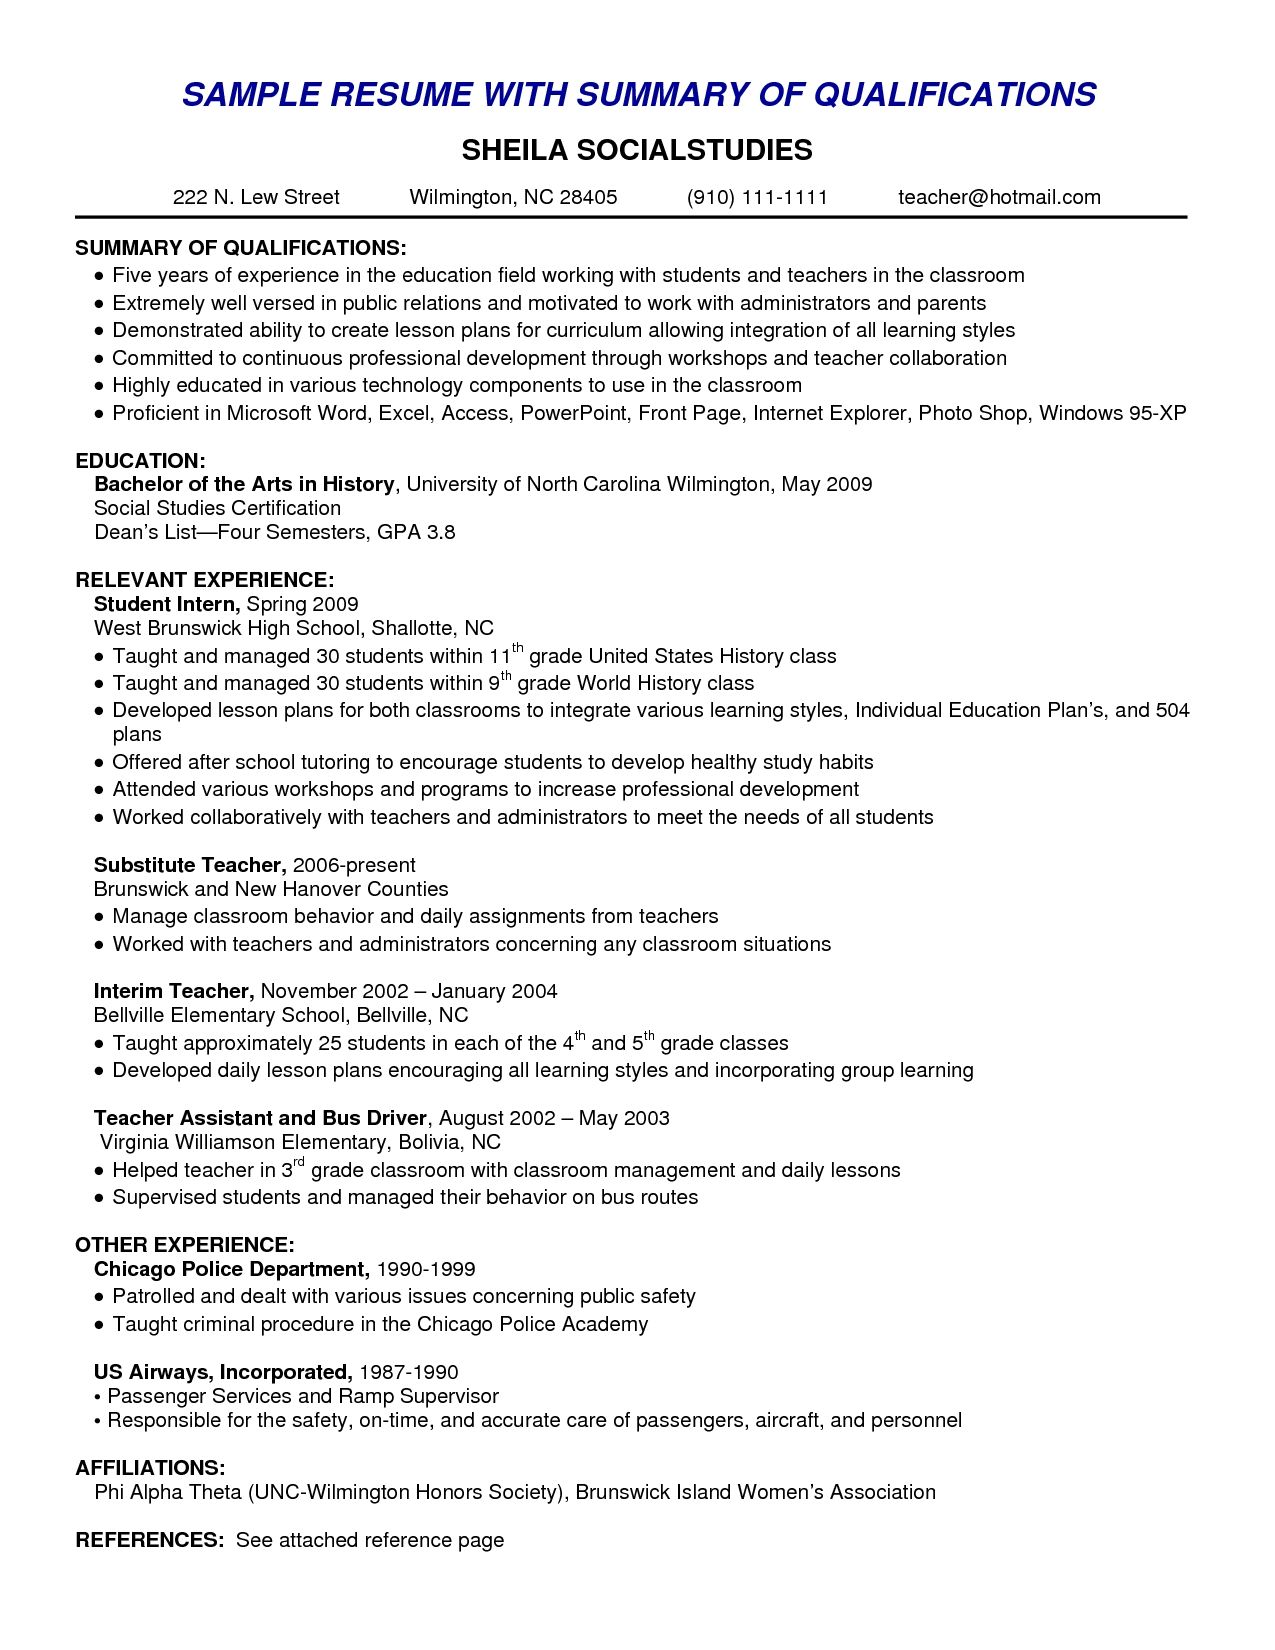 What Skills To Put On Resume Resume Skills Summary Examples Example Of Skills Summary For